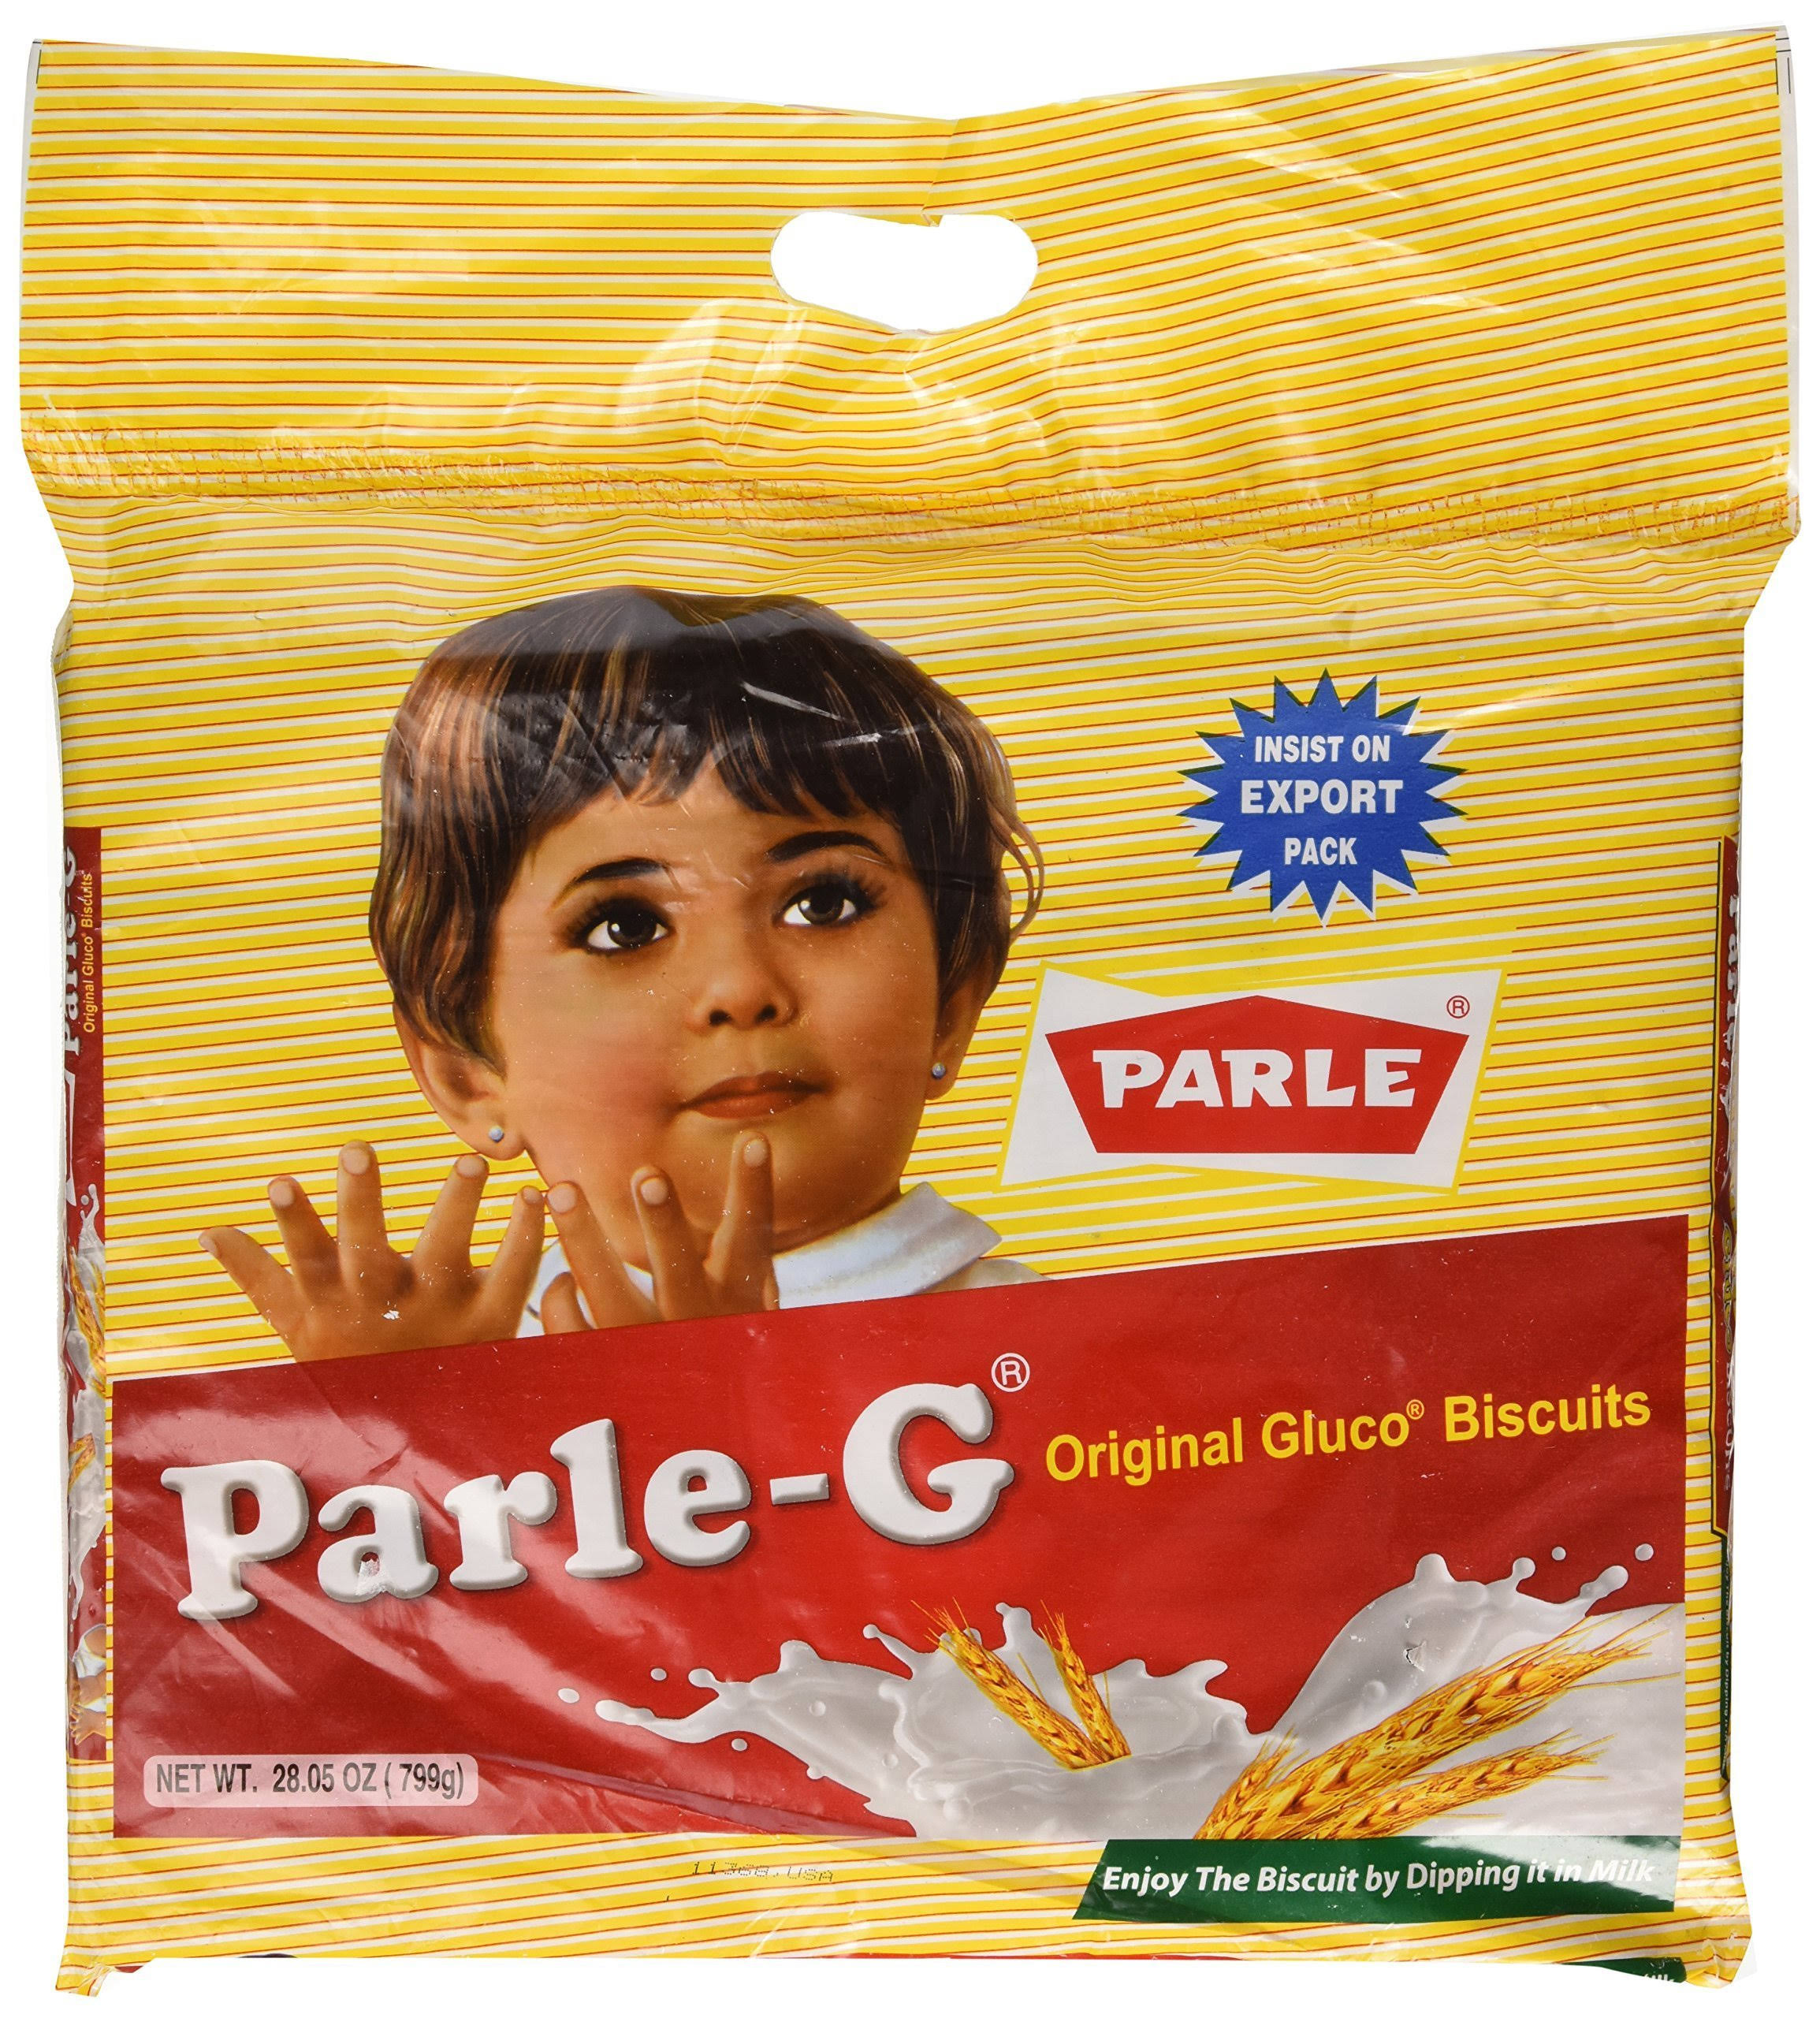 Parle G 28.05 oz Pack of